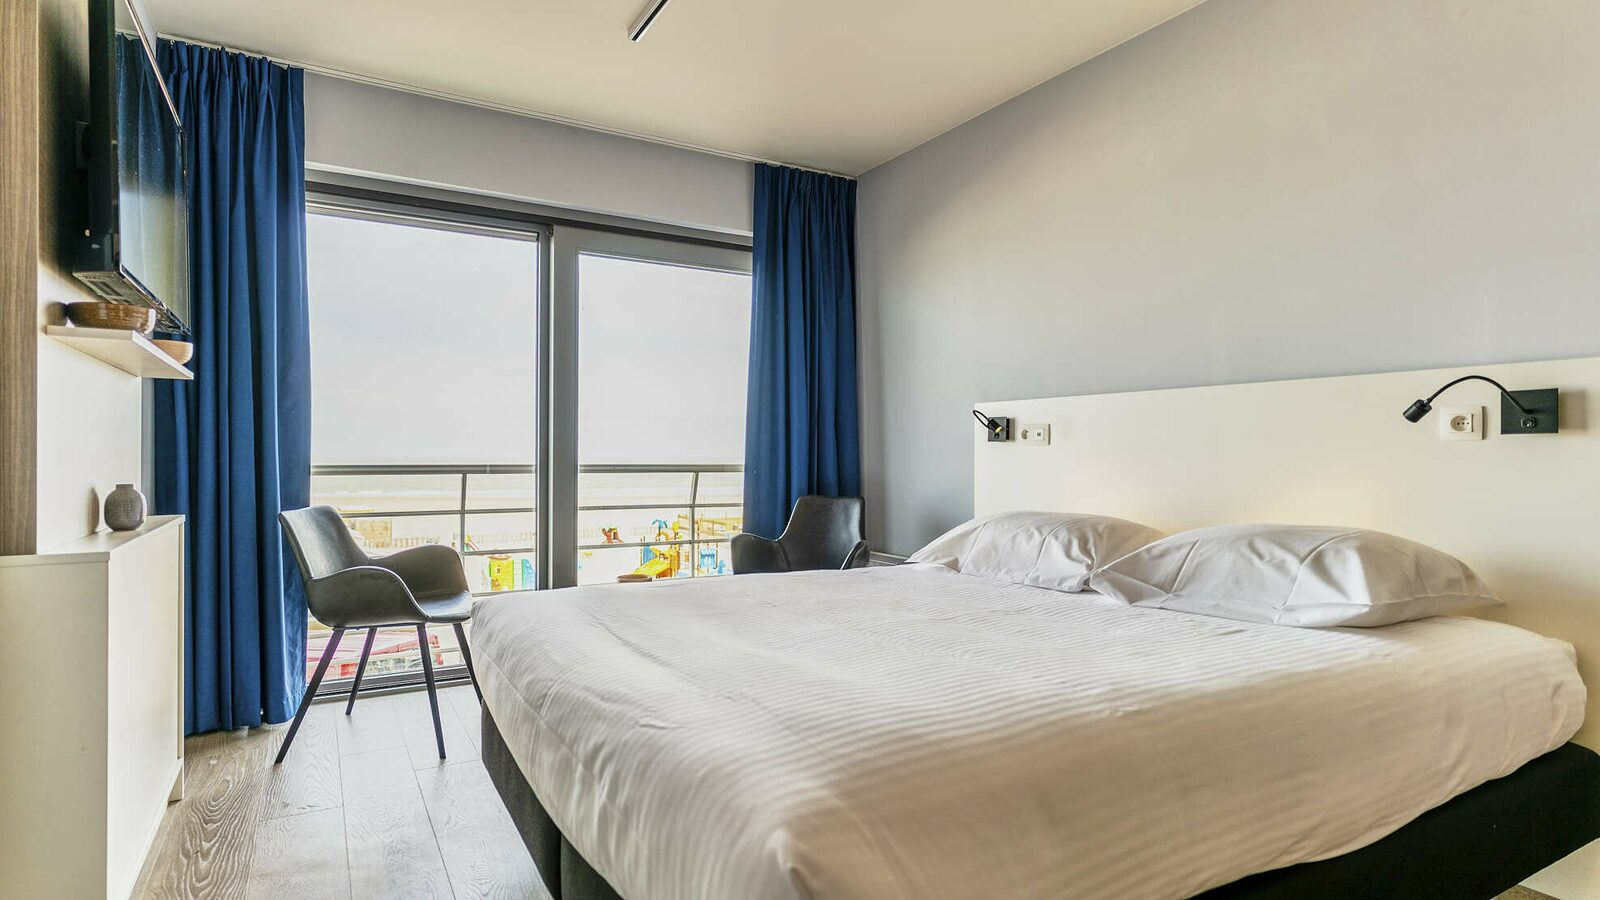 New Holiday Suite for 2 people with seaview